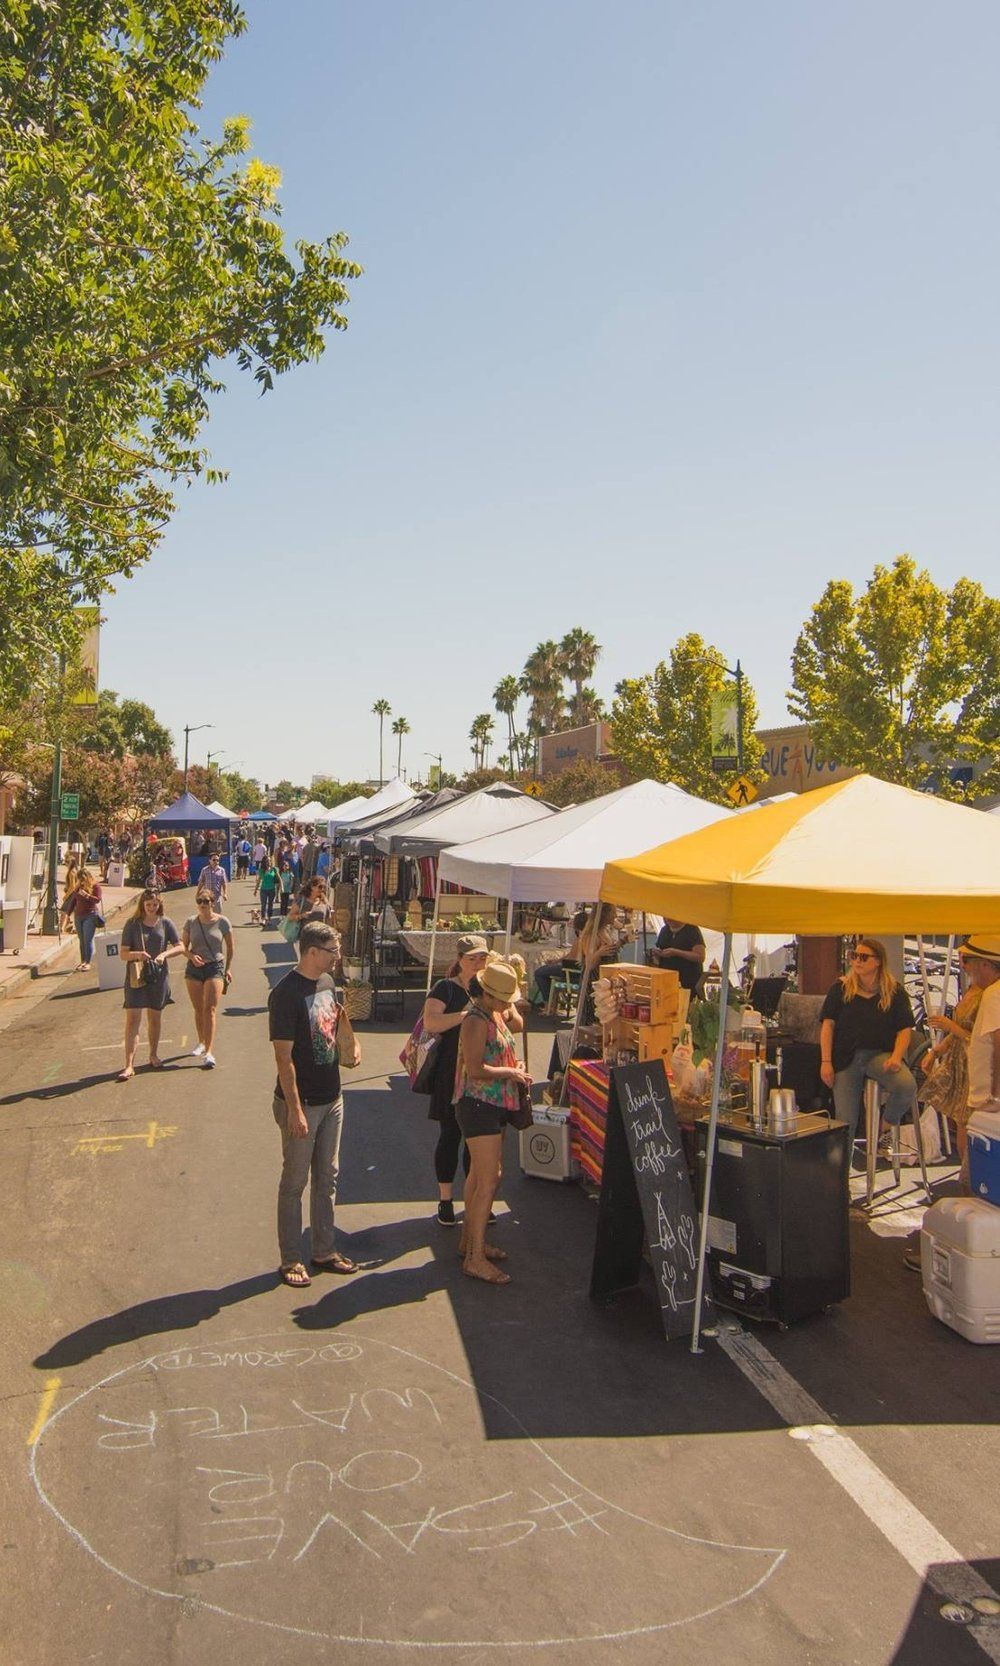 Street Fair Stockmarket Festival Makers Market Open Air California